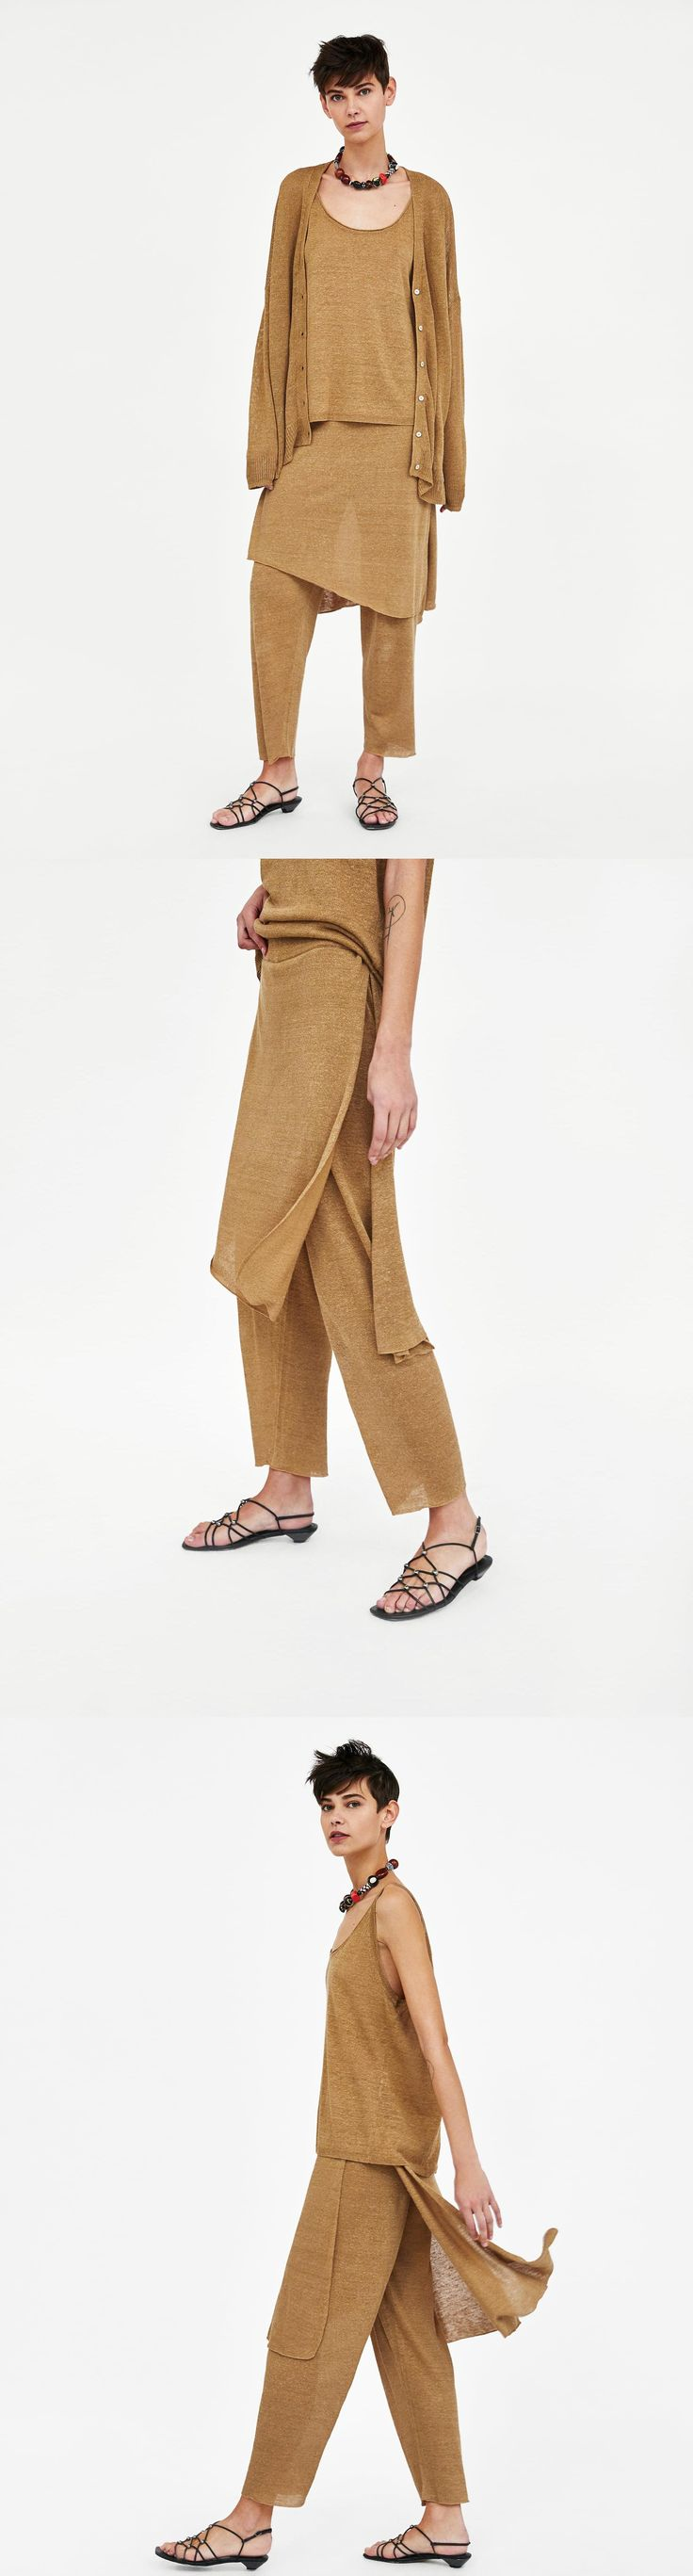 Knit Linen Trousers With Overlapping Skirt // 45.90 USD // Zara // Knit trousers with elastic waistband and overlapping skirt with side vents. HEIGHT OF MODEL: 178 CM / 5′ 10″